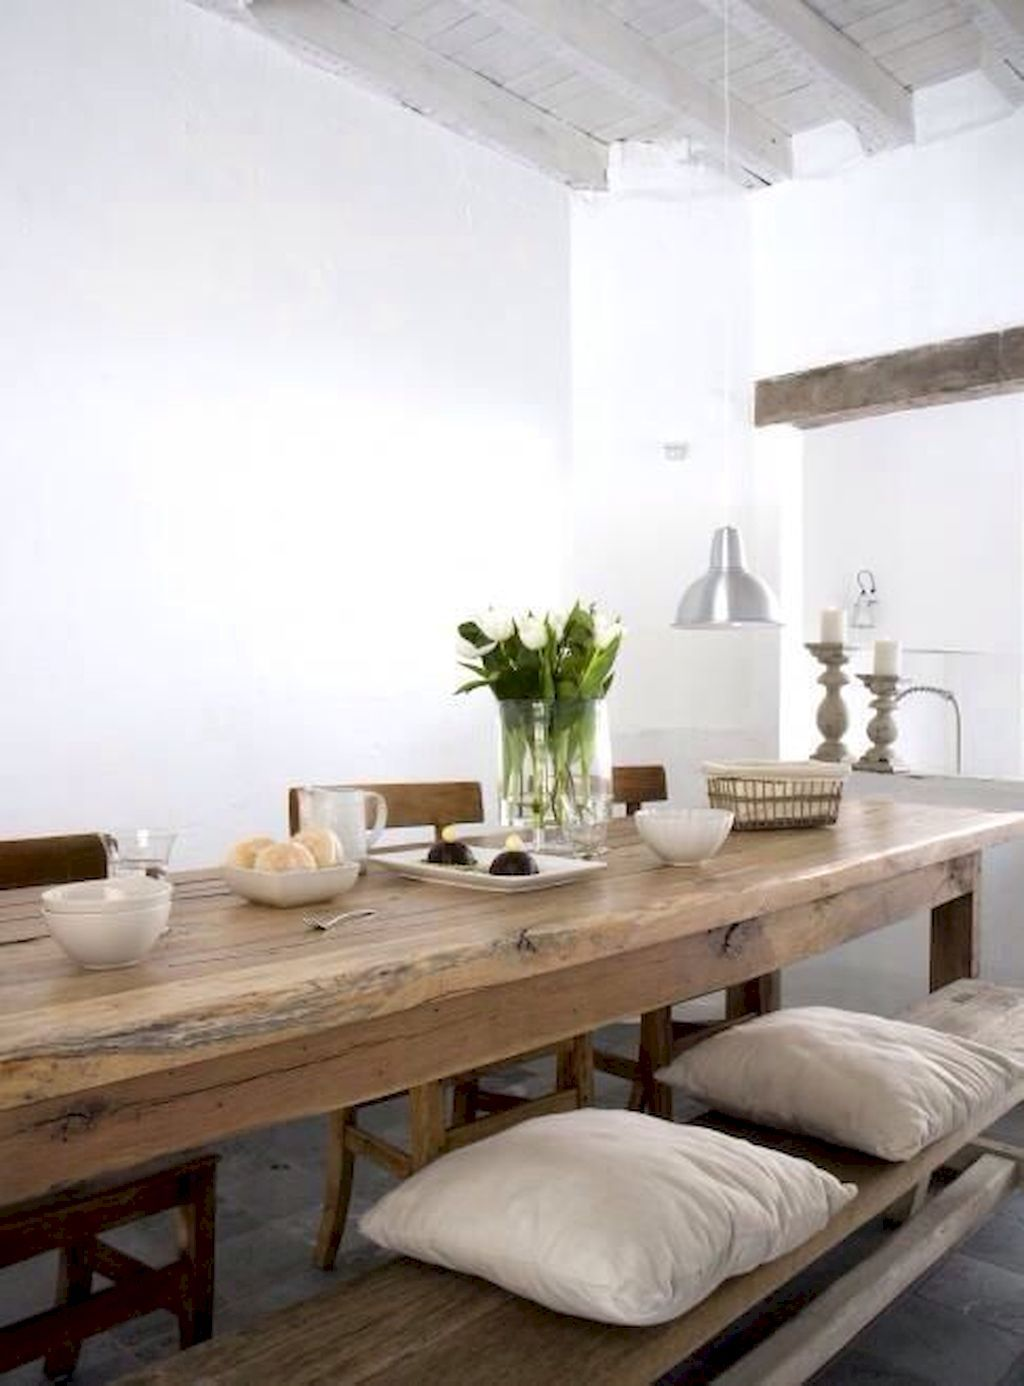 60+ Dining Table Inspirations for DIY Farmhouse Concept images